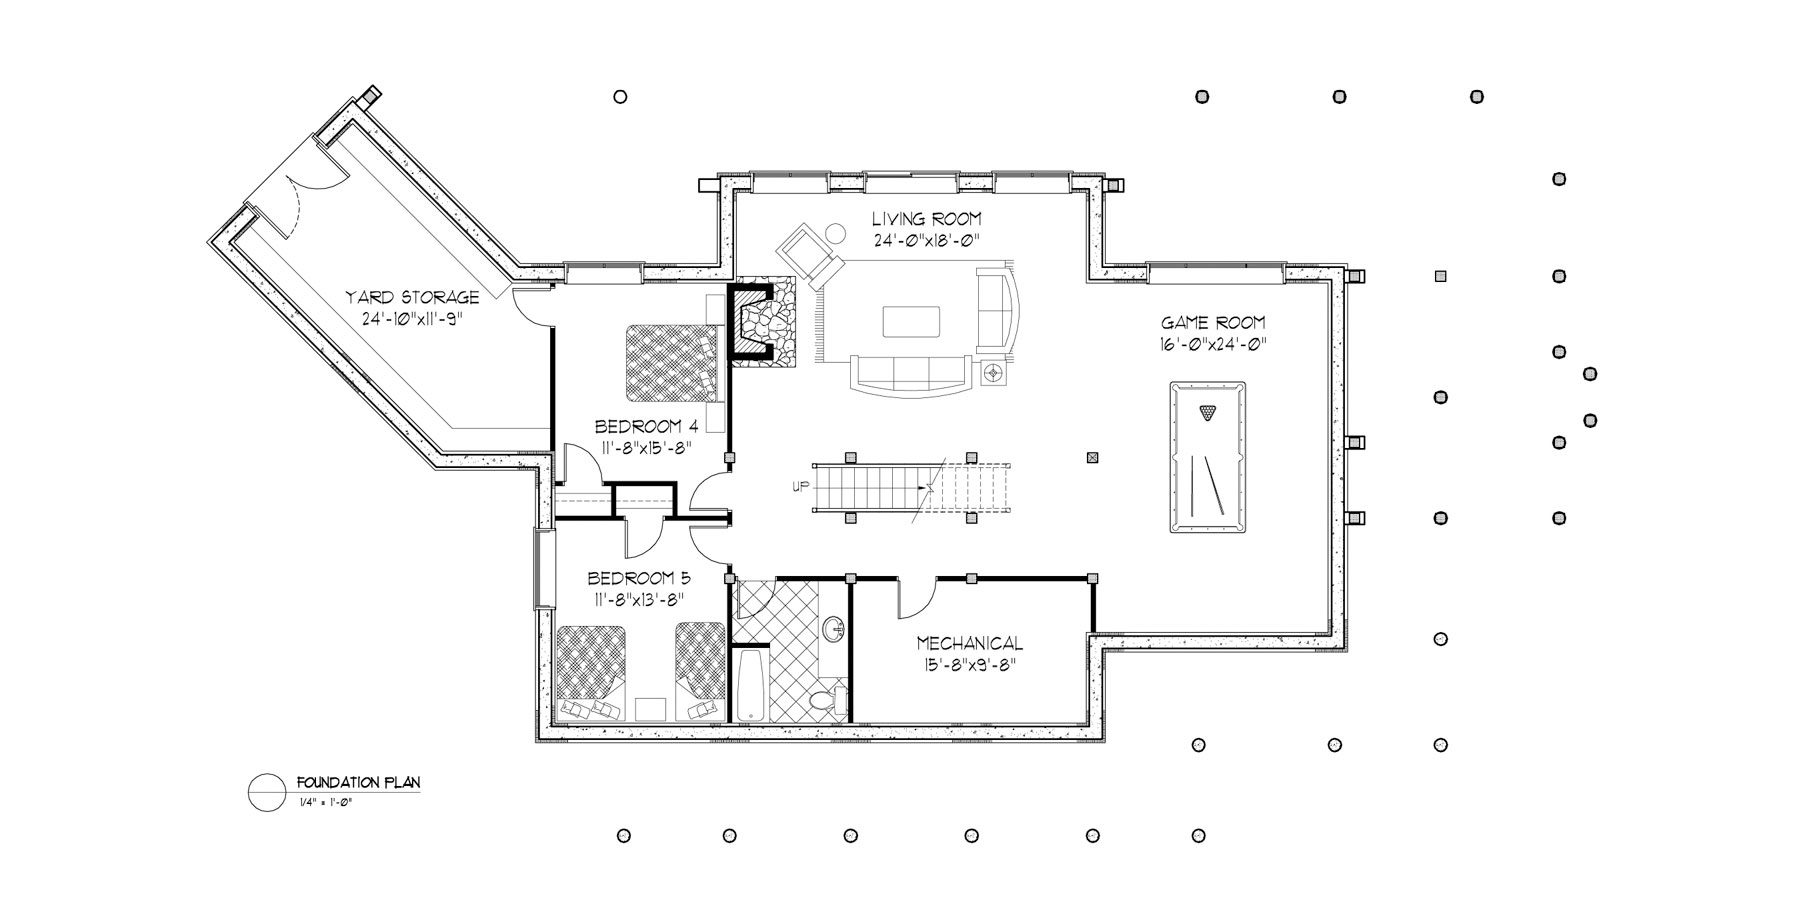 Normerica Timber Frames, House Plan, The Fremont 3582, Basement Layout